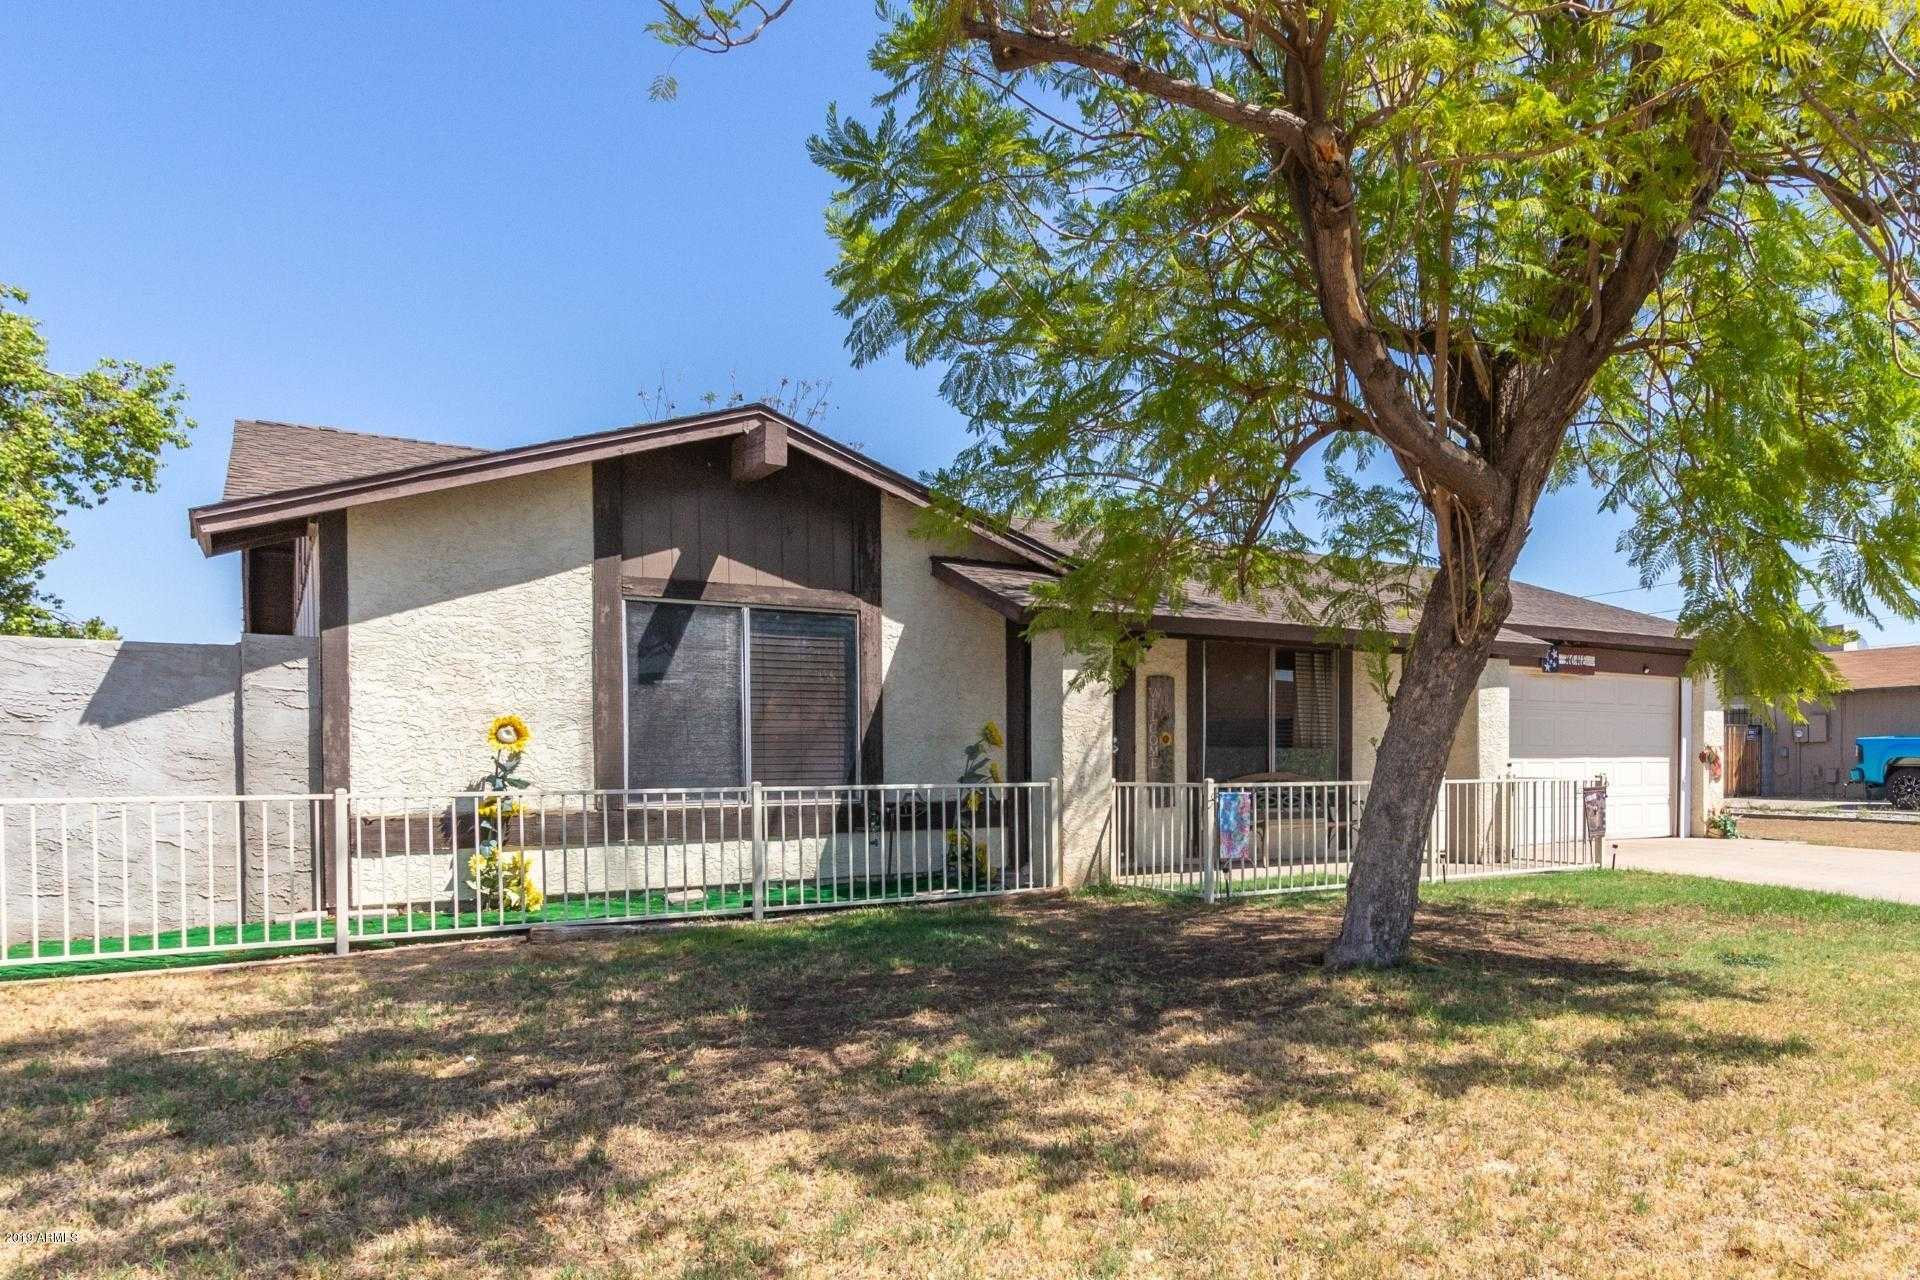 $225,000 - 2Br/2Ba - Home for Sale in Parkview, Glendale